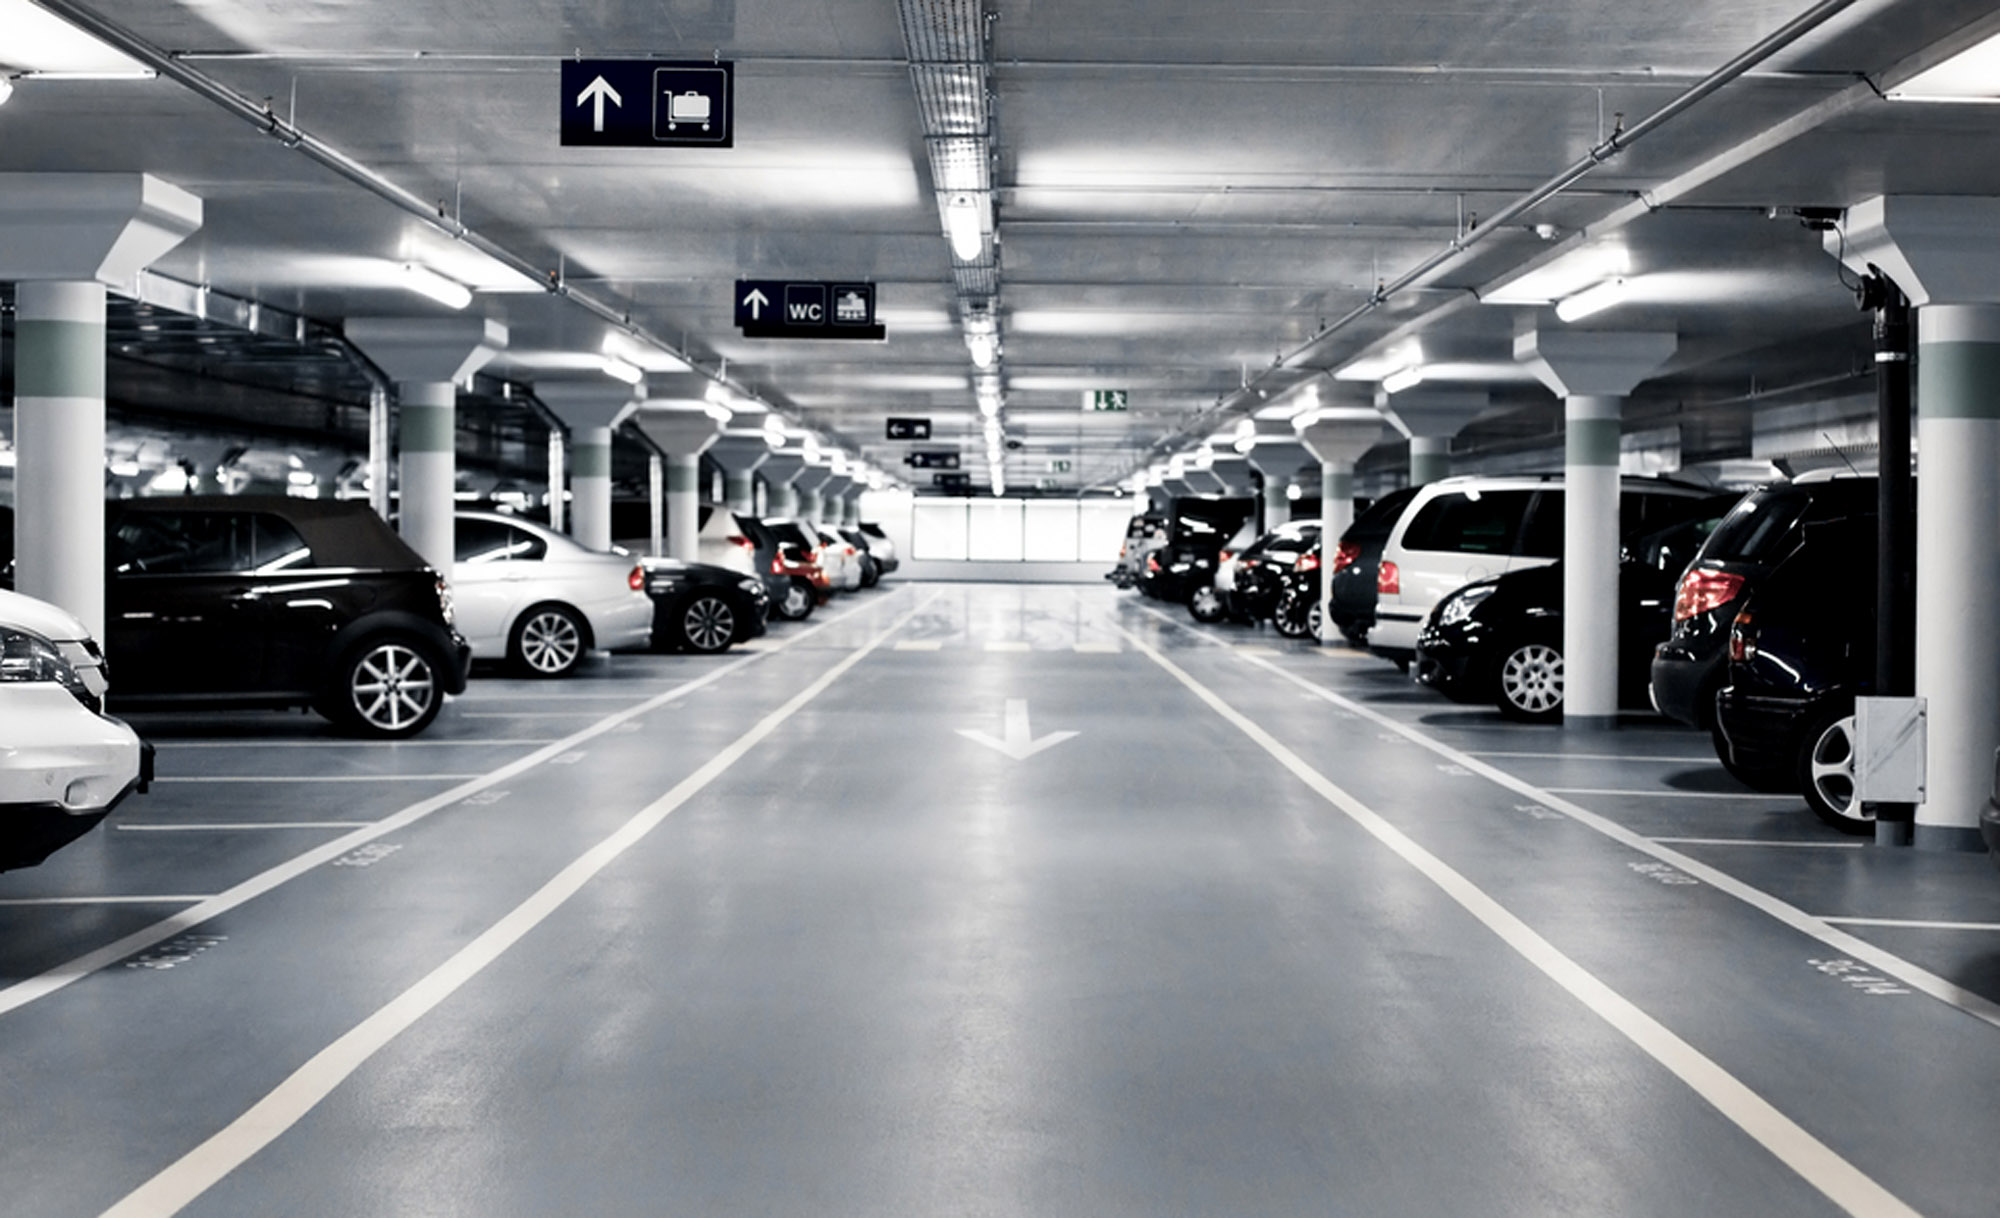 Les conditions de vente d'une place de parking